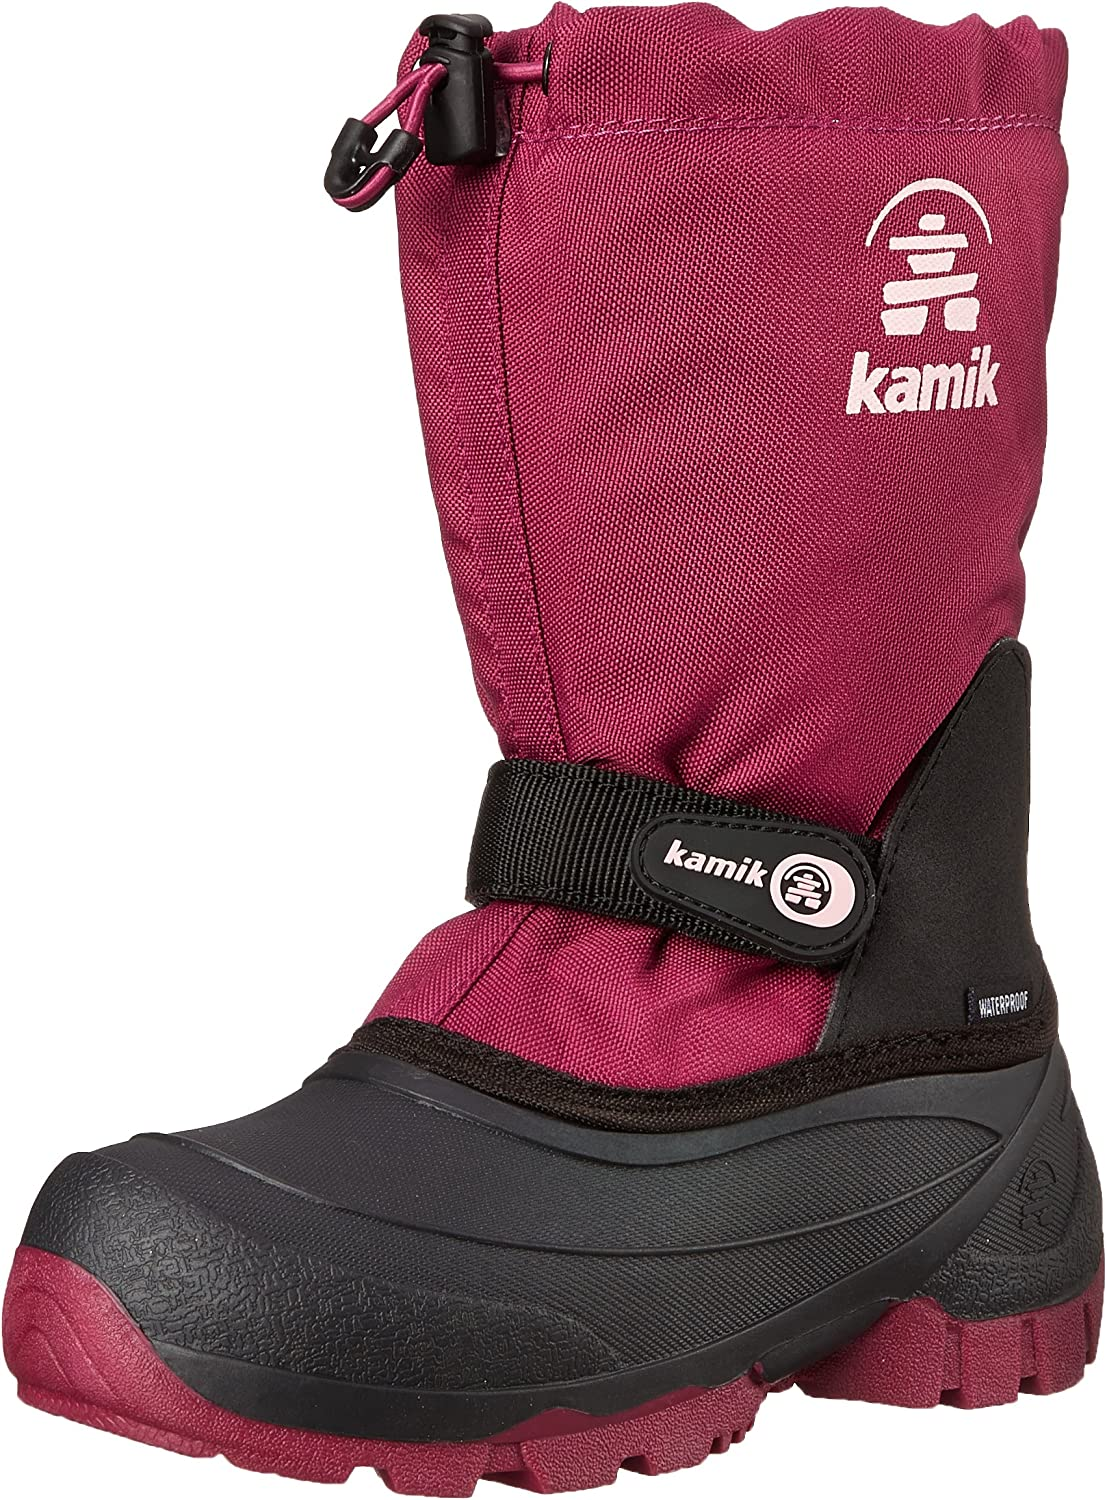 Kamik Nation JR Cam Boot Toddler//Little Kid//Big Kid